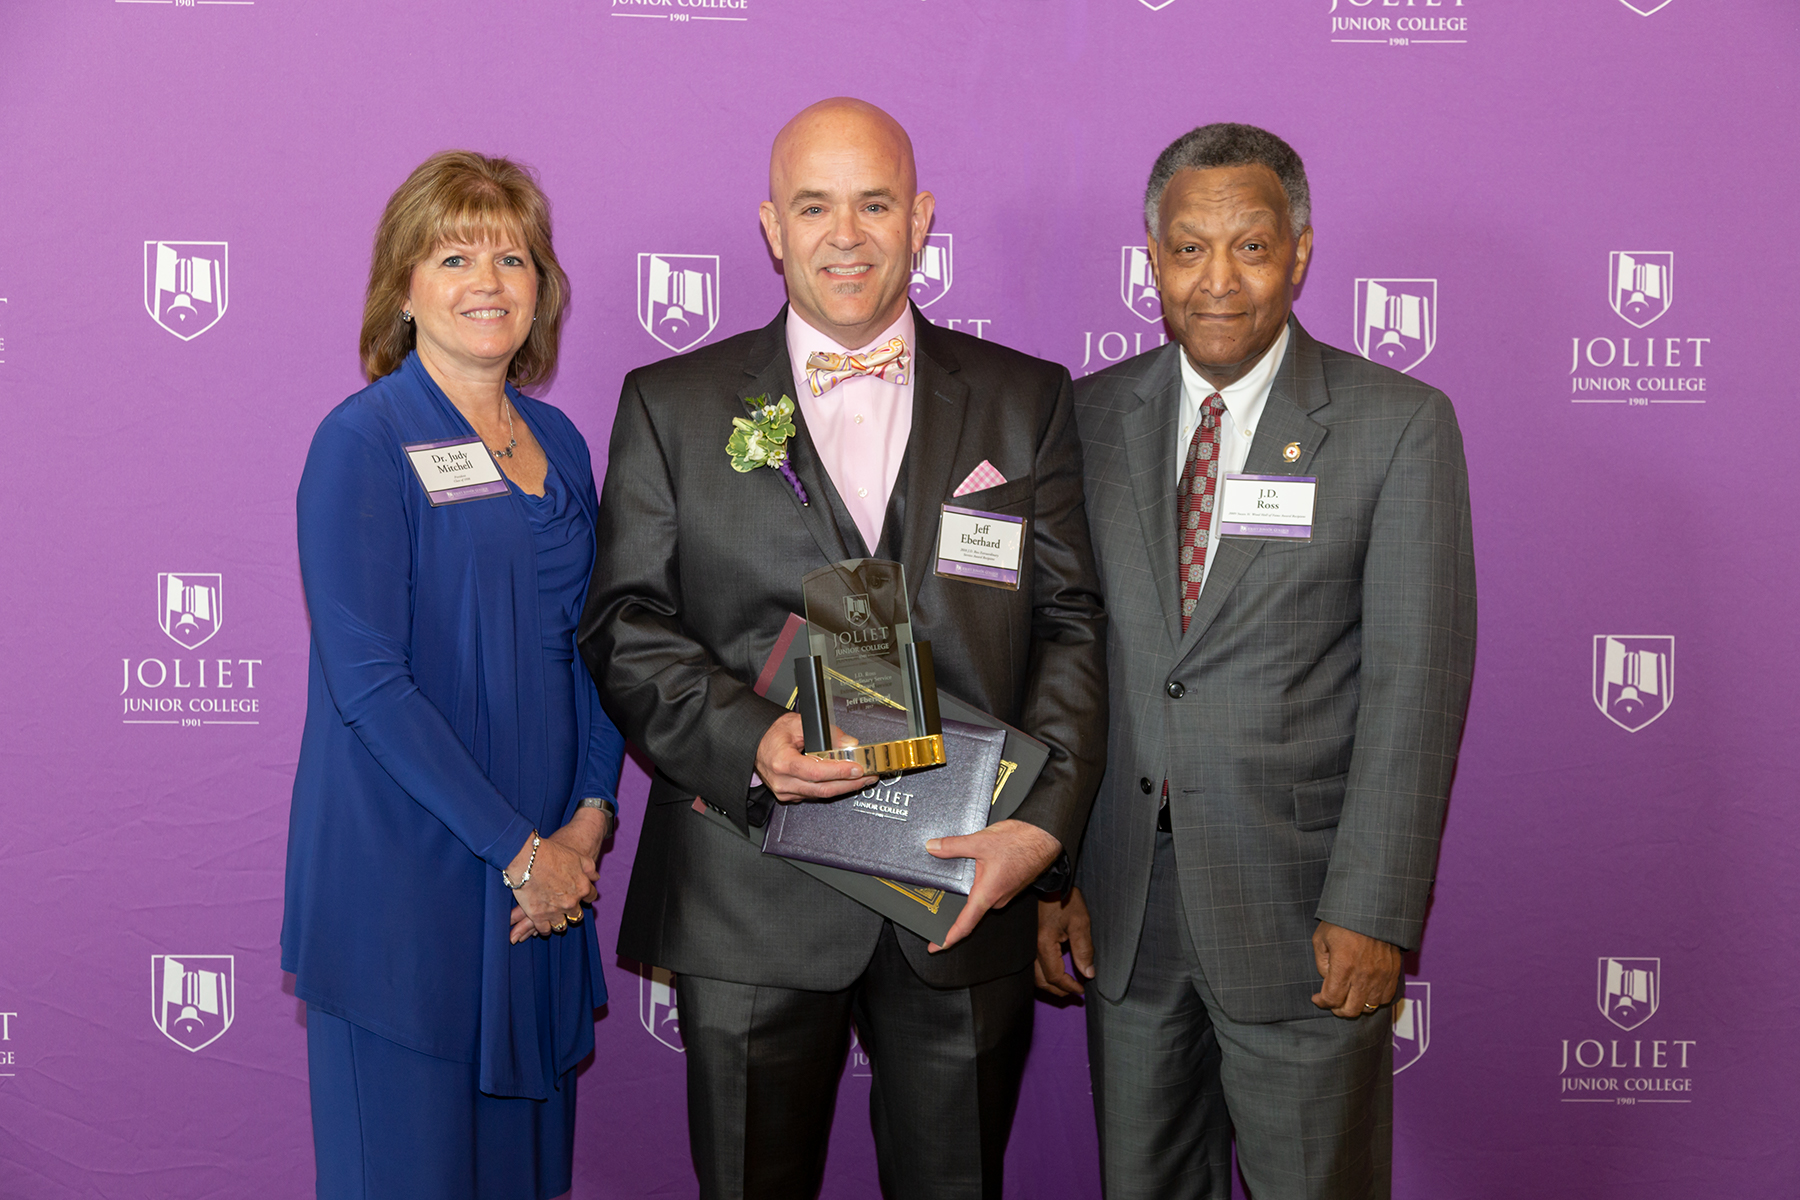 From left: JJC President Dr. Judy Mitchell, Jeff Eberhard (J.D. Ross Extraordinary Service Award recipient), and JJC President Emeritus J.D. Ross.